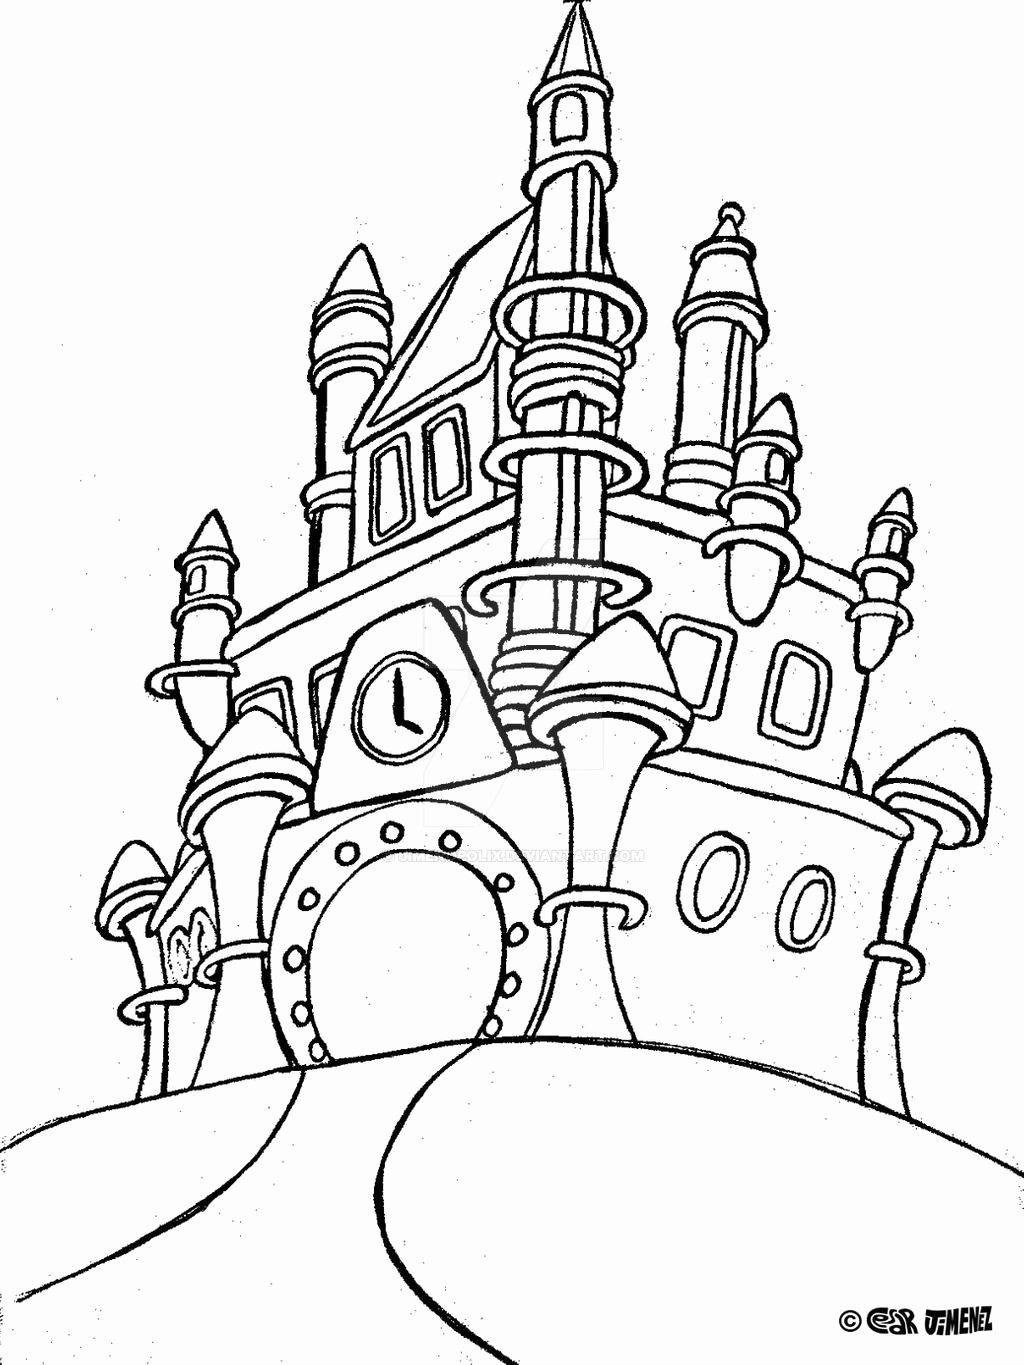 Disney World Coloring Page Inspirational Jimenopolix Disney World Castle By Jime Disney Coloring Pages Cinderella Coloring Pages Disney Princess Coloring Pages